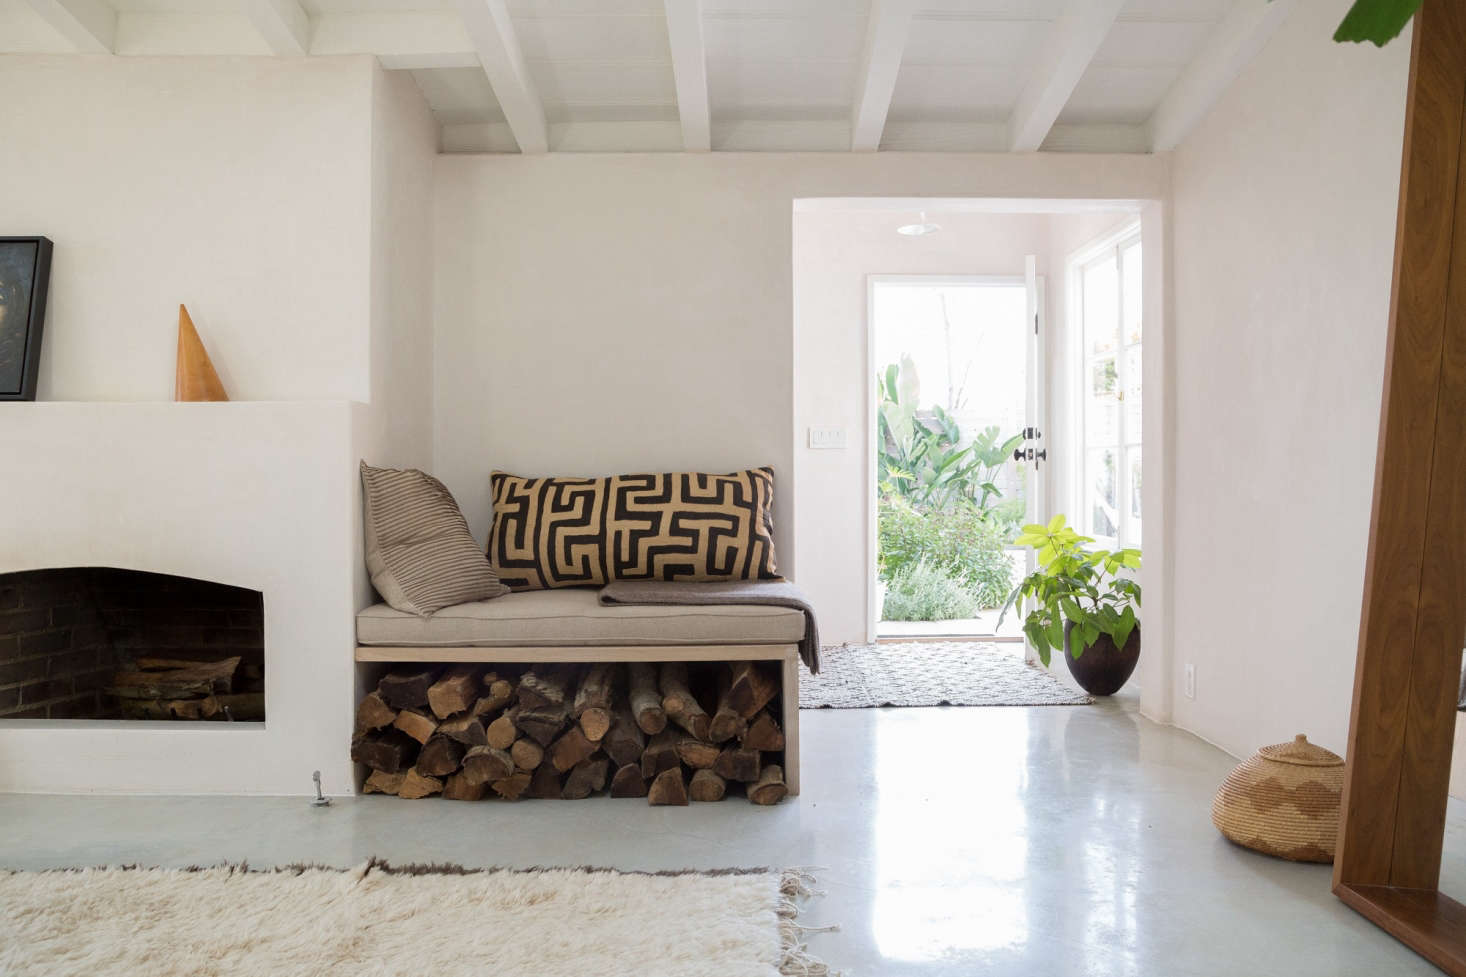 Golubovicupdated the brick fireplace by creating a concrete front and then adding plaster over the top. A built-in bench alongside doubles as log storage.